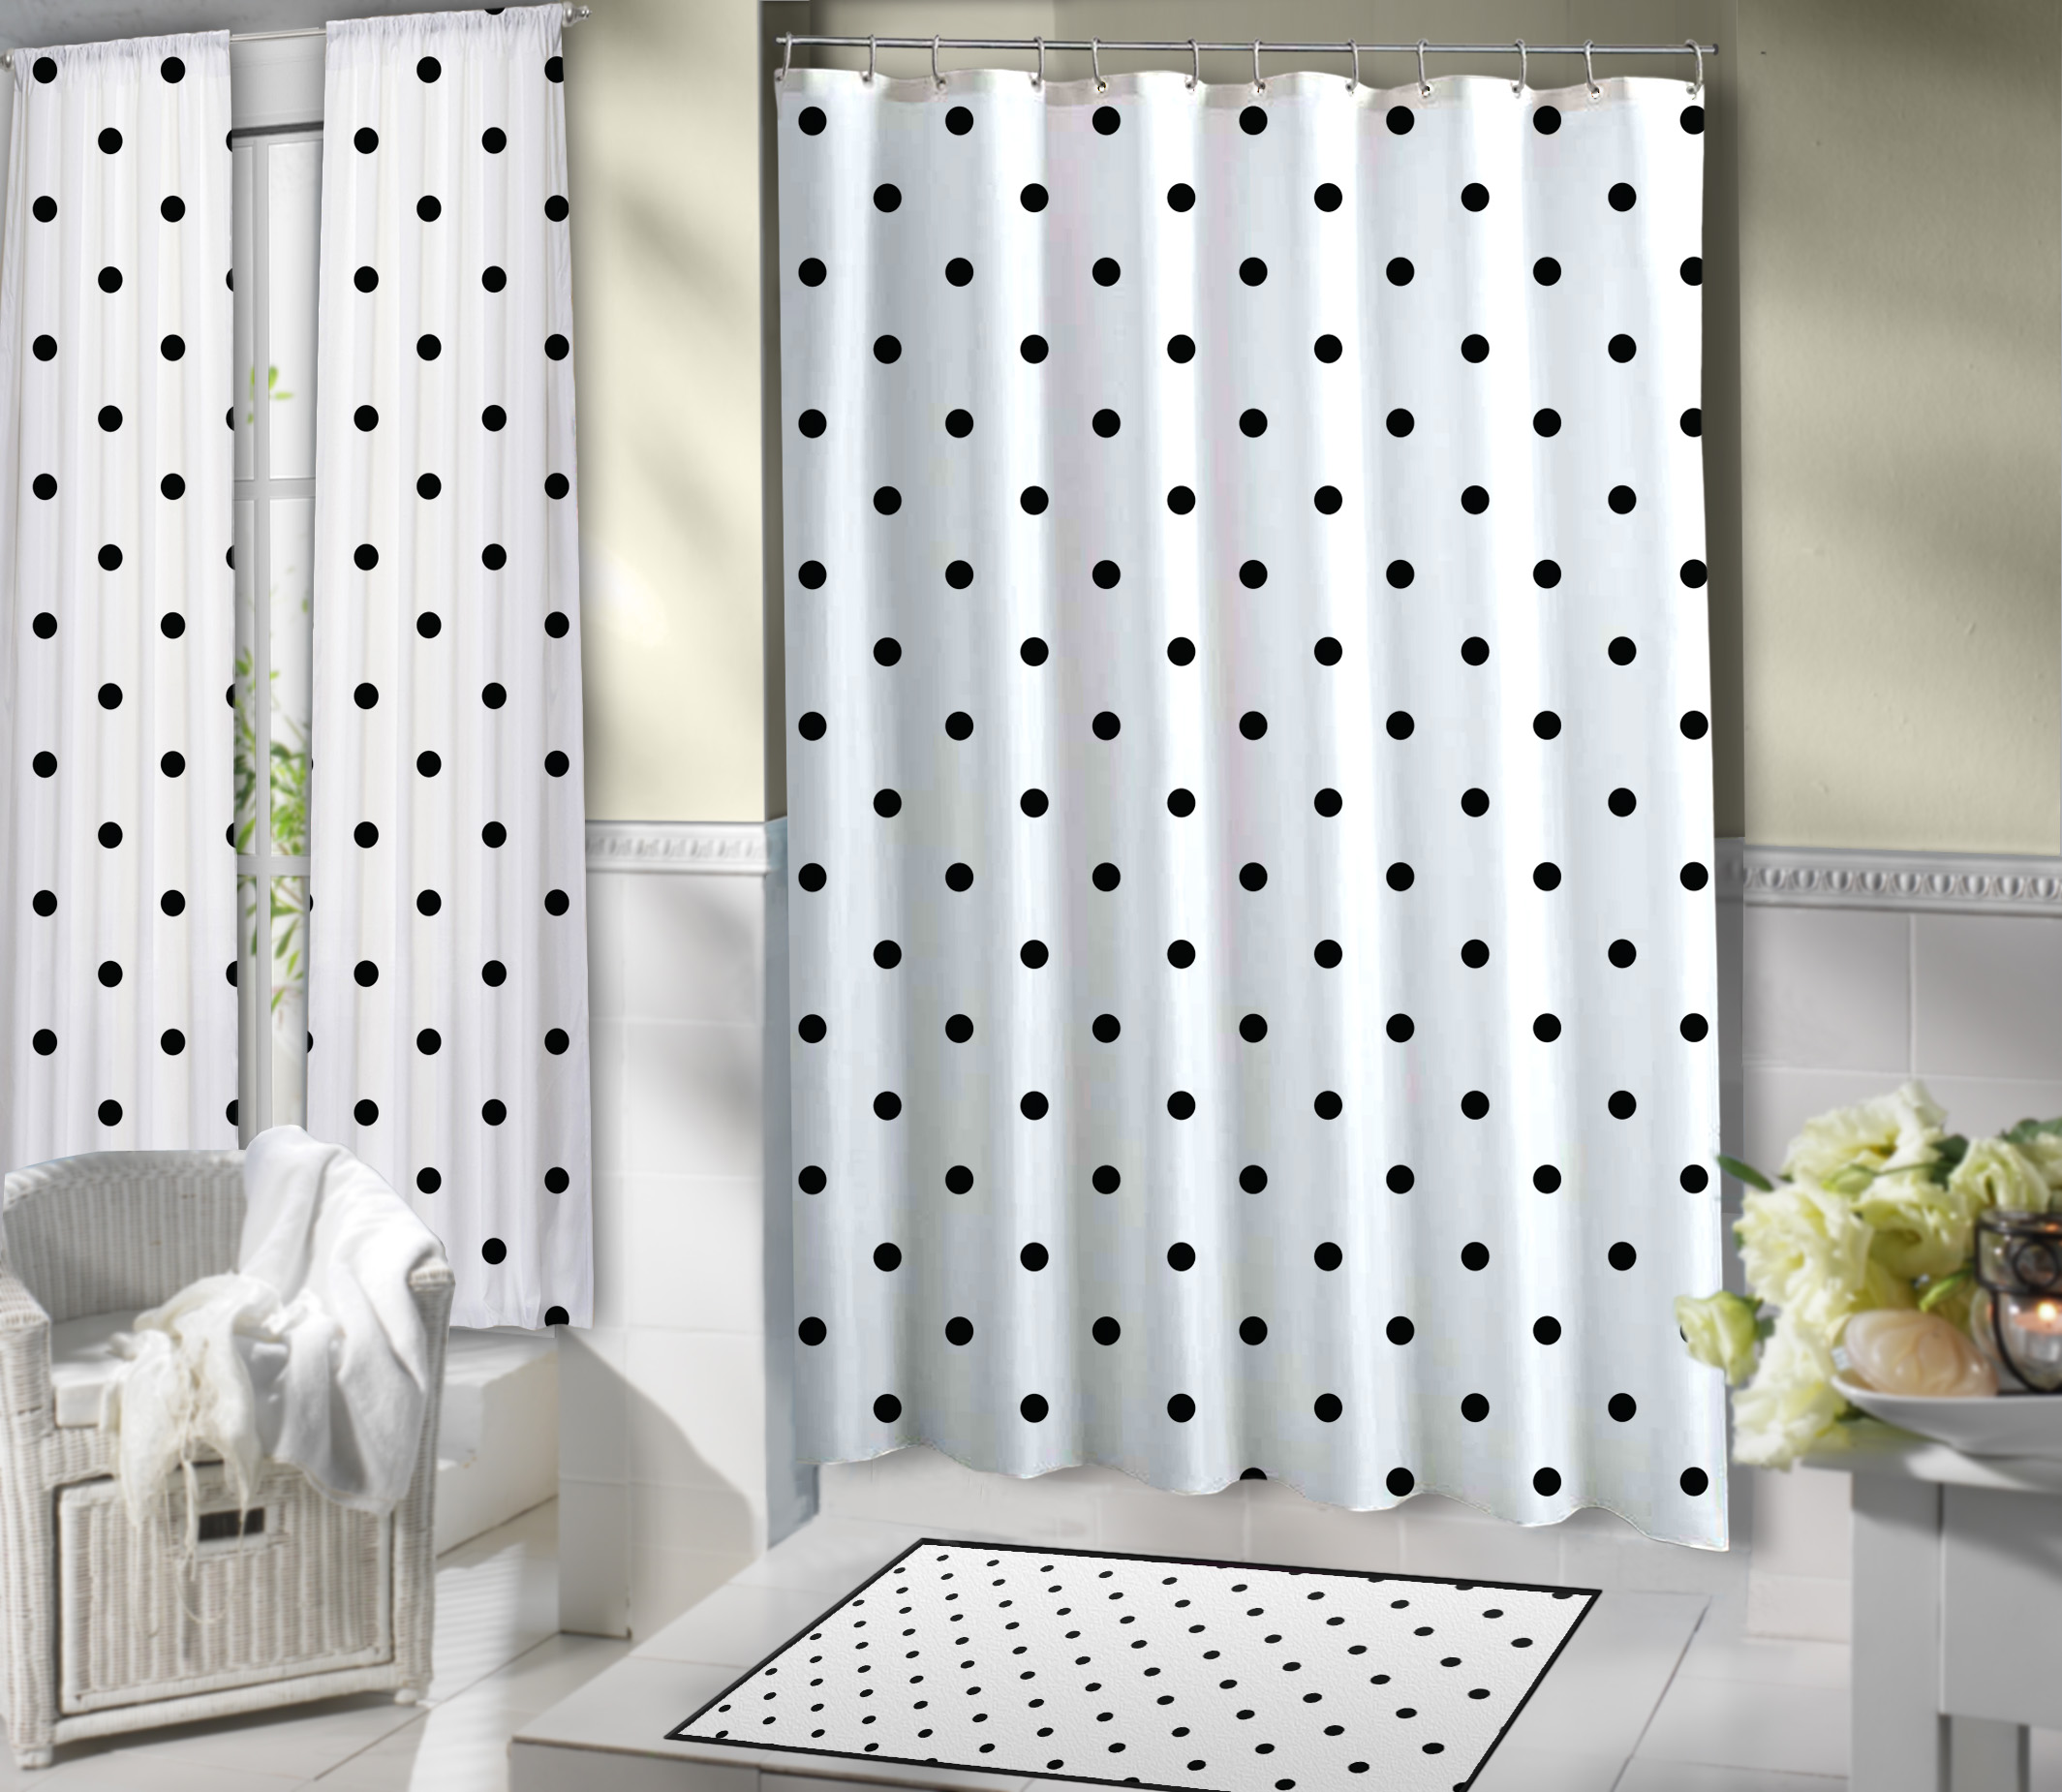 Shower Dots Elegant Polkadots Black White Curtain